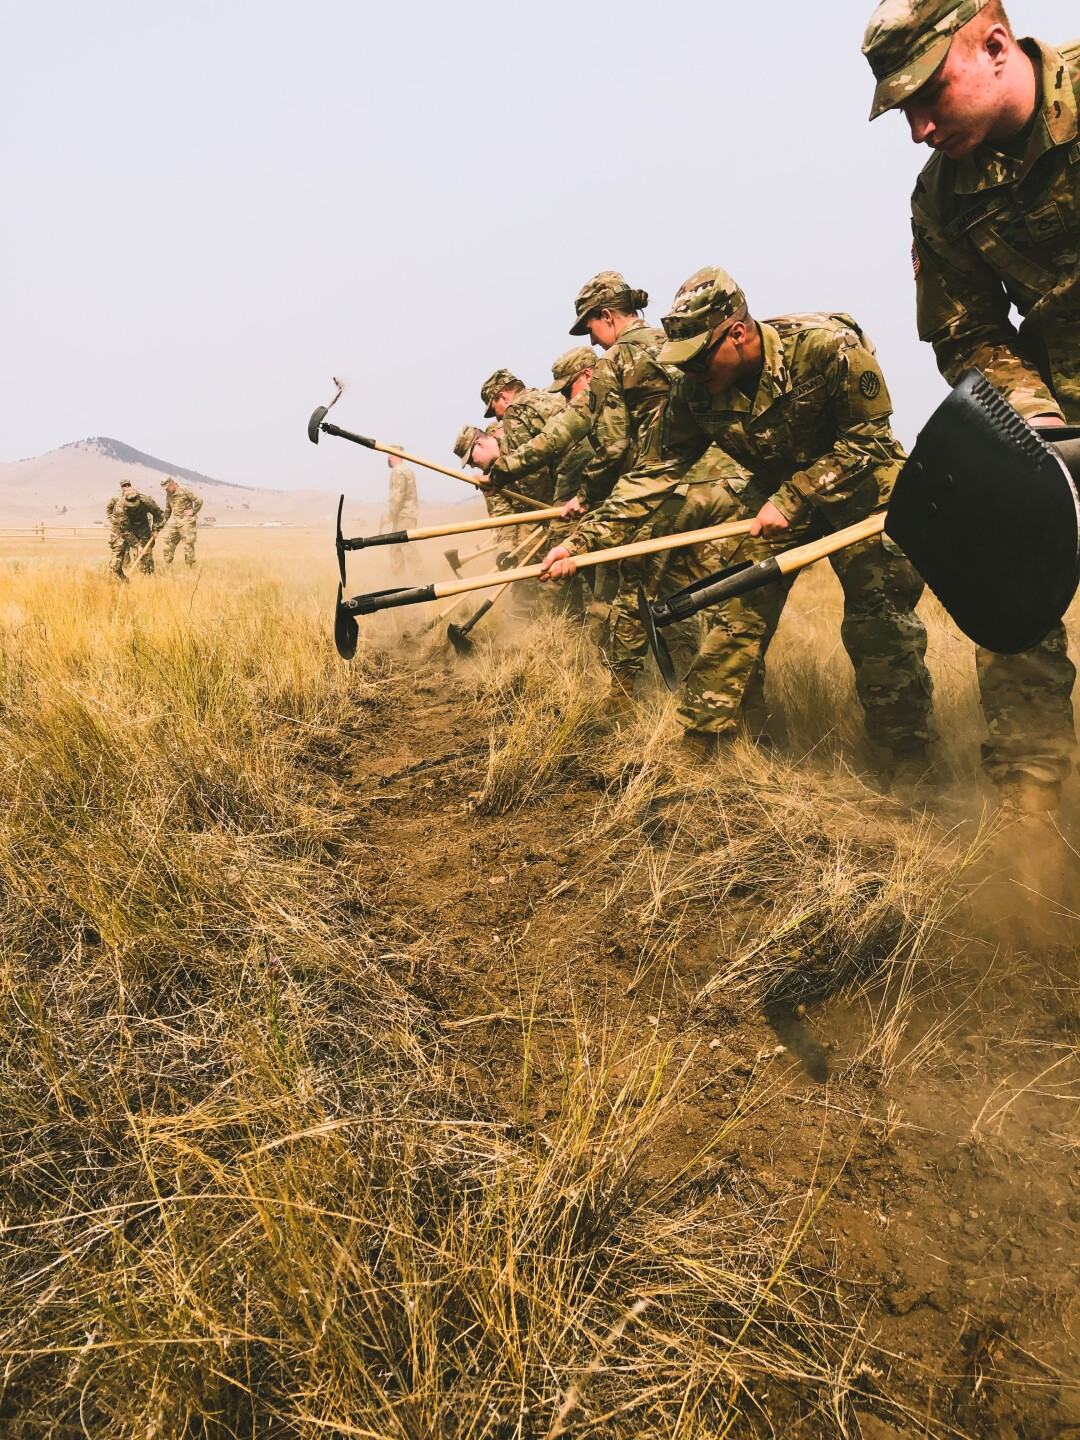 Florida wildland firefighters help train 500+ Montana National Guard as wildfire activity increases